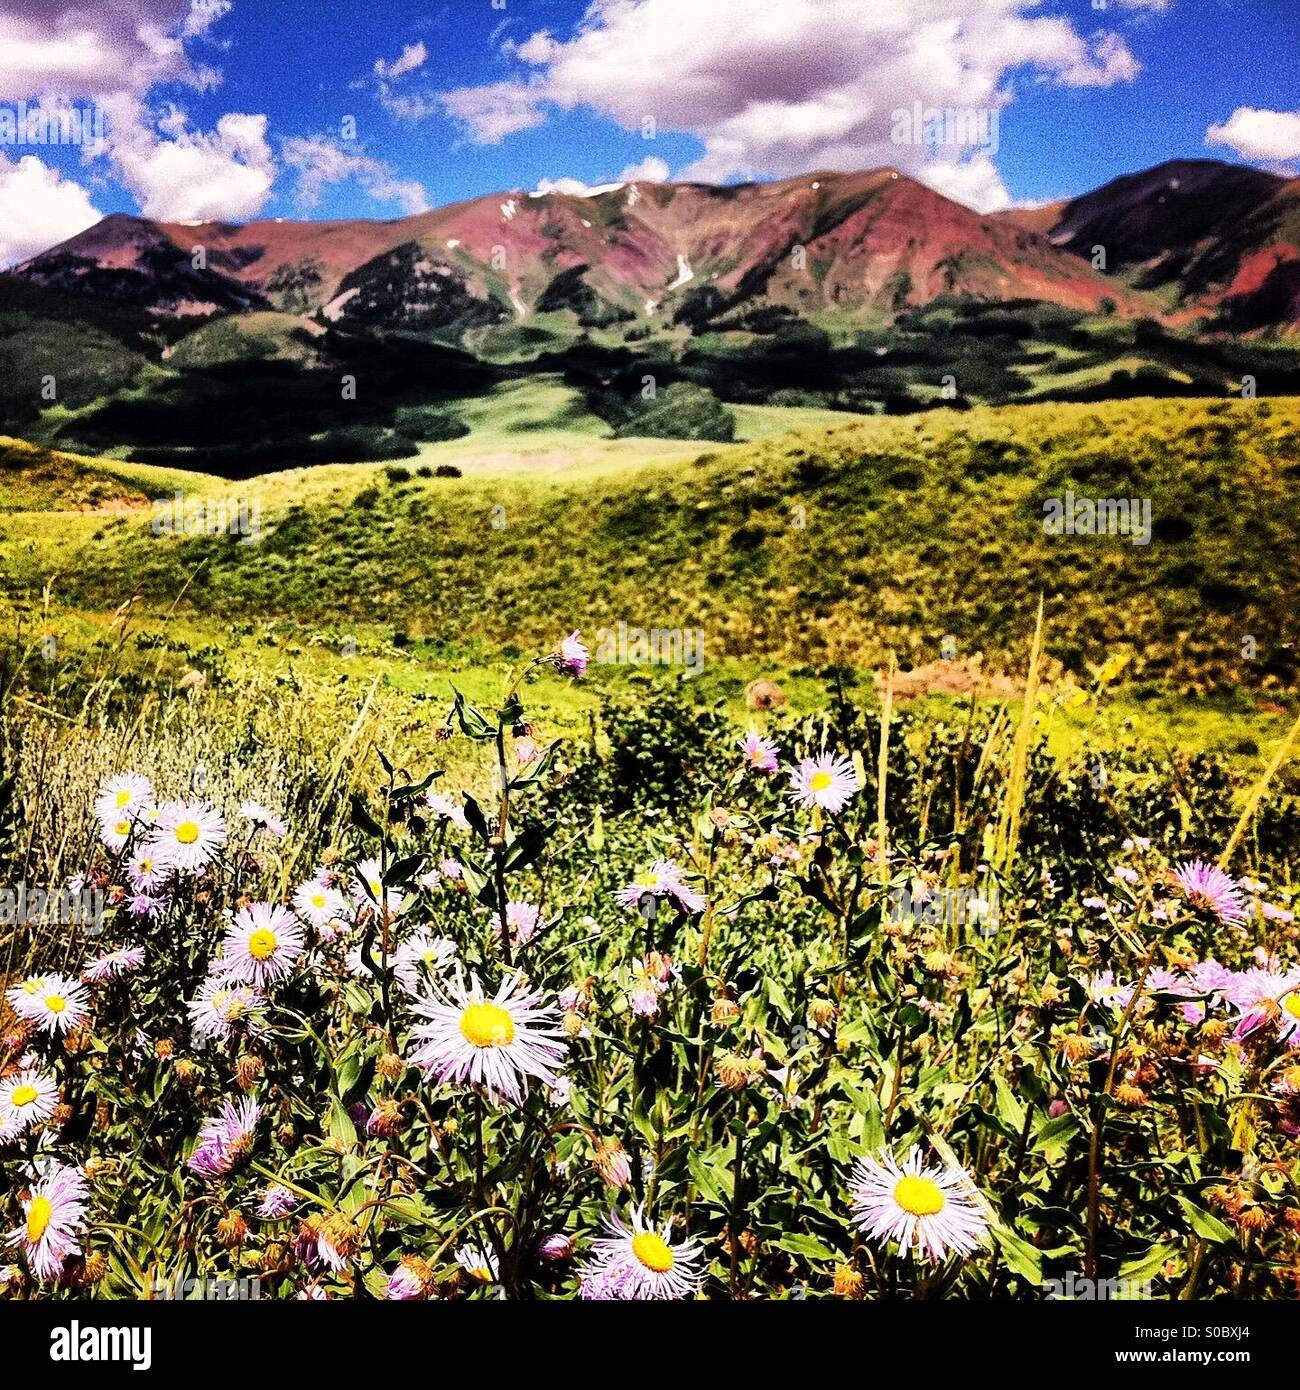 Crested Butte wild flowers, Colorado - Stock Image